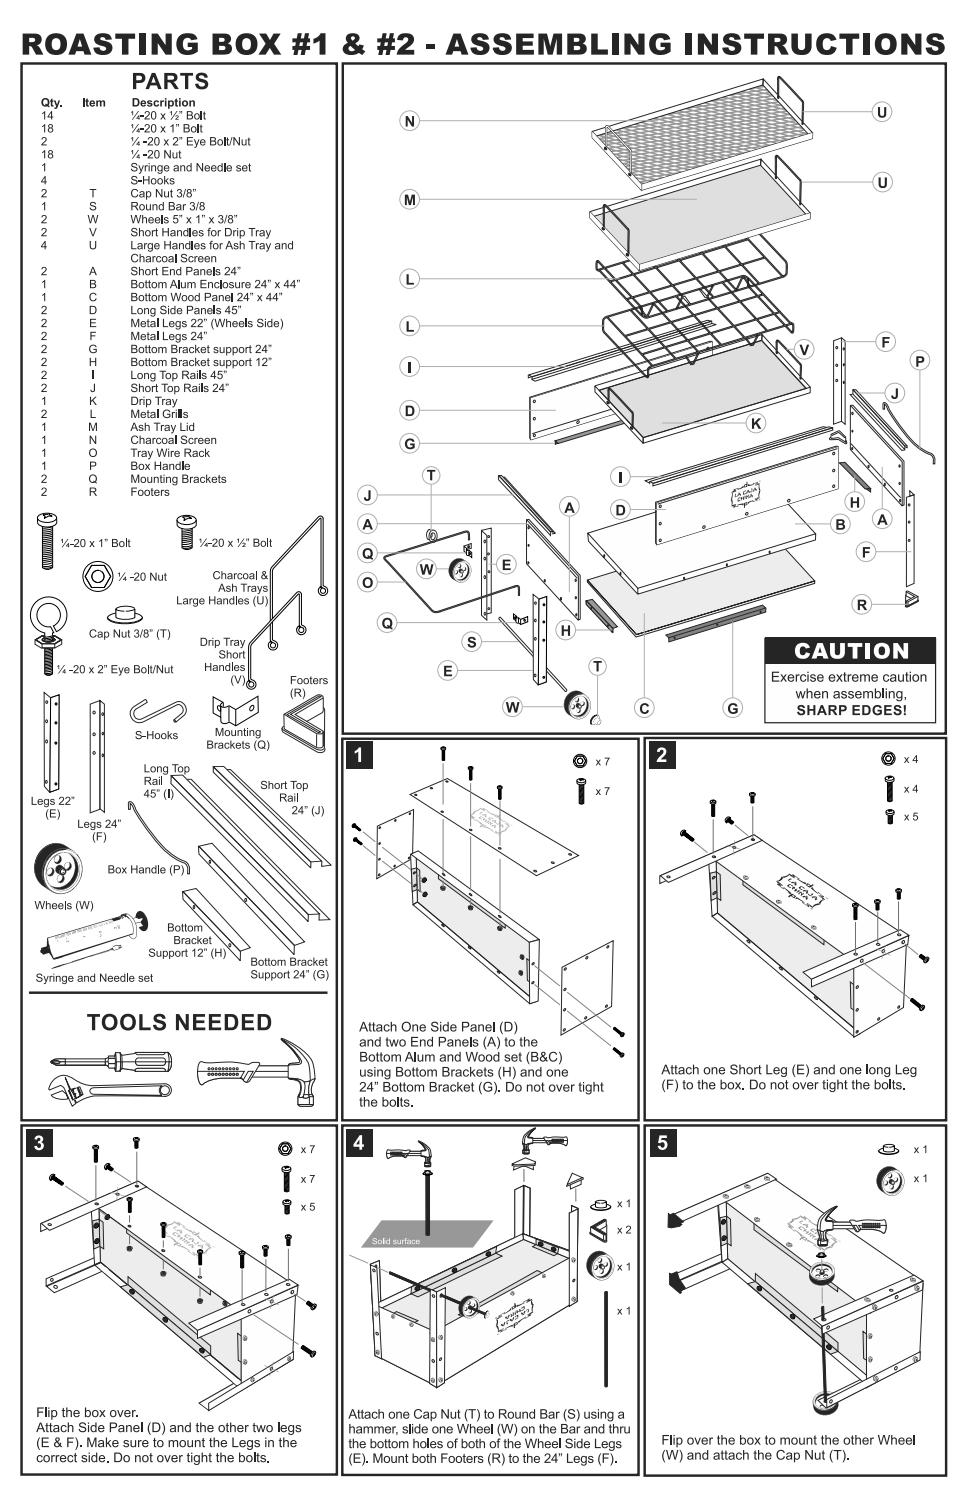 Lcc Assembly Instructions 2016 By La Caja China Issuu